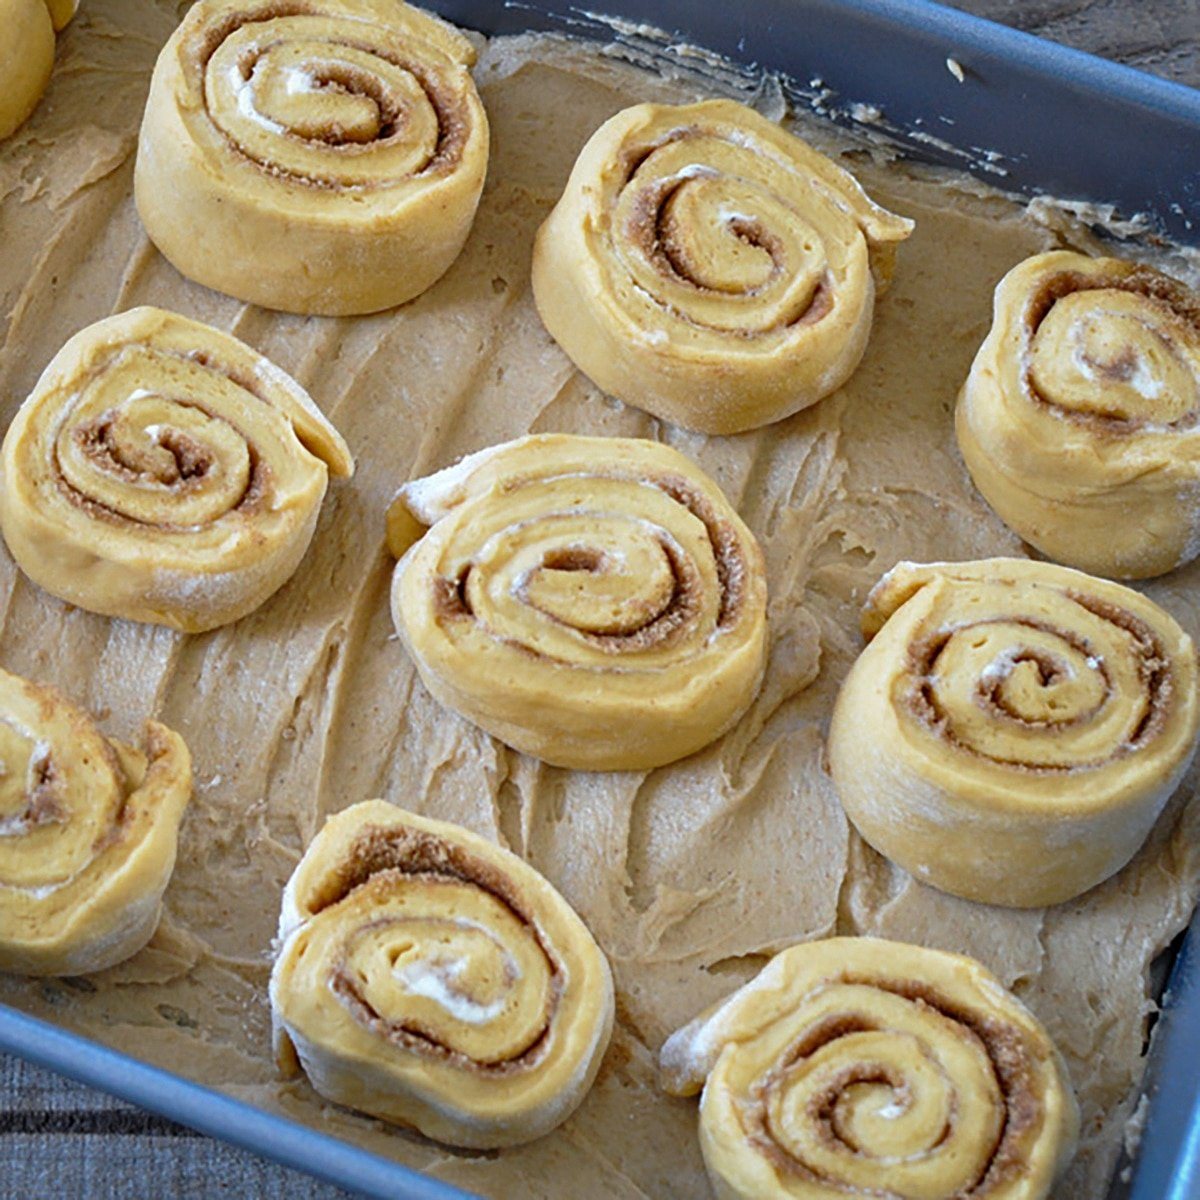 spiced rolls laid in a bed of butter, brown sugar, and corn syrup